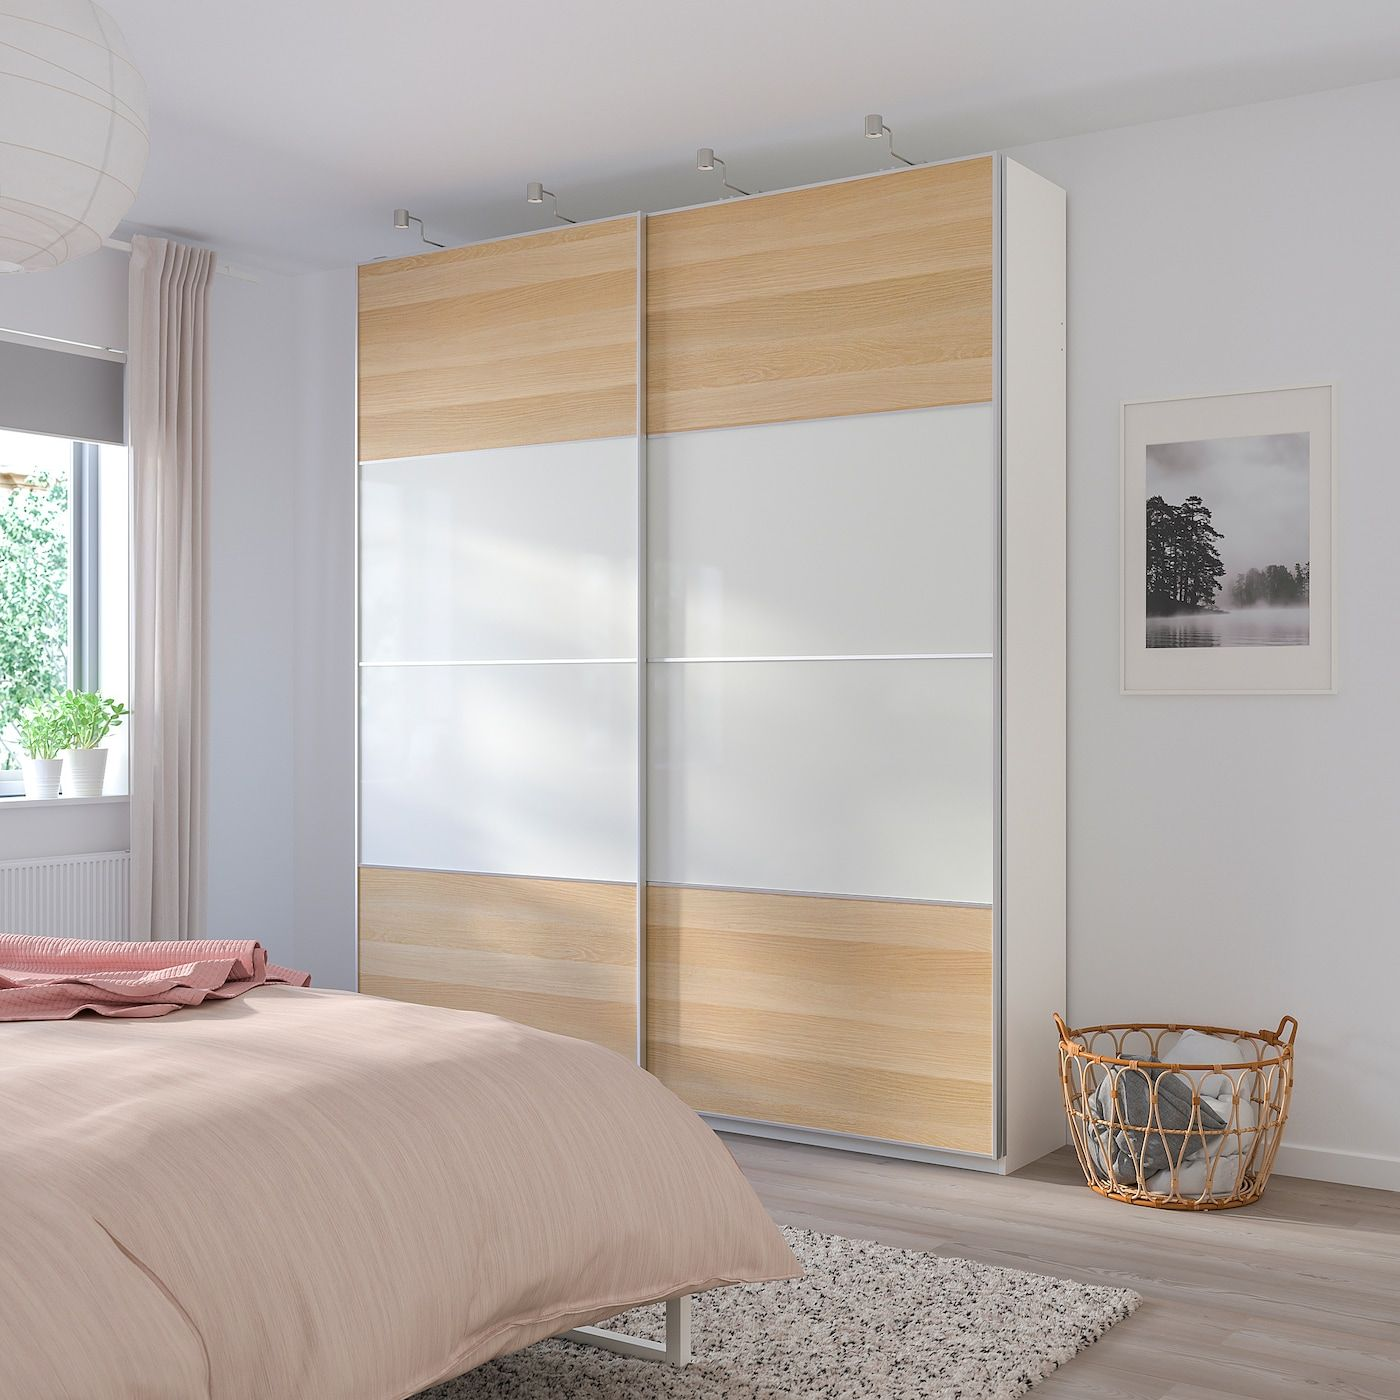 Mehamn 4 Panels For Sliding Door Frame White Stained Oak Effect White Find It Here Ikea In 2020 Sliding Doors Ikea Ikea Wardrobe